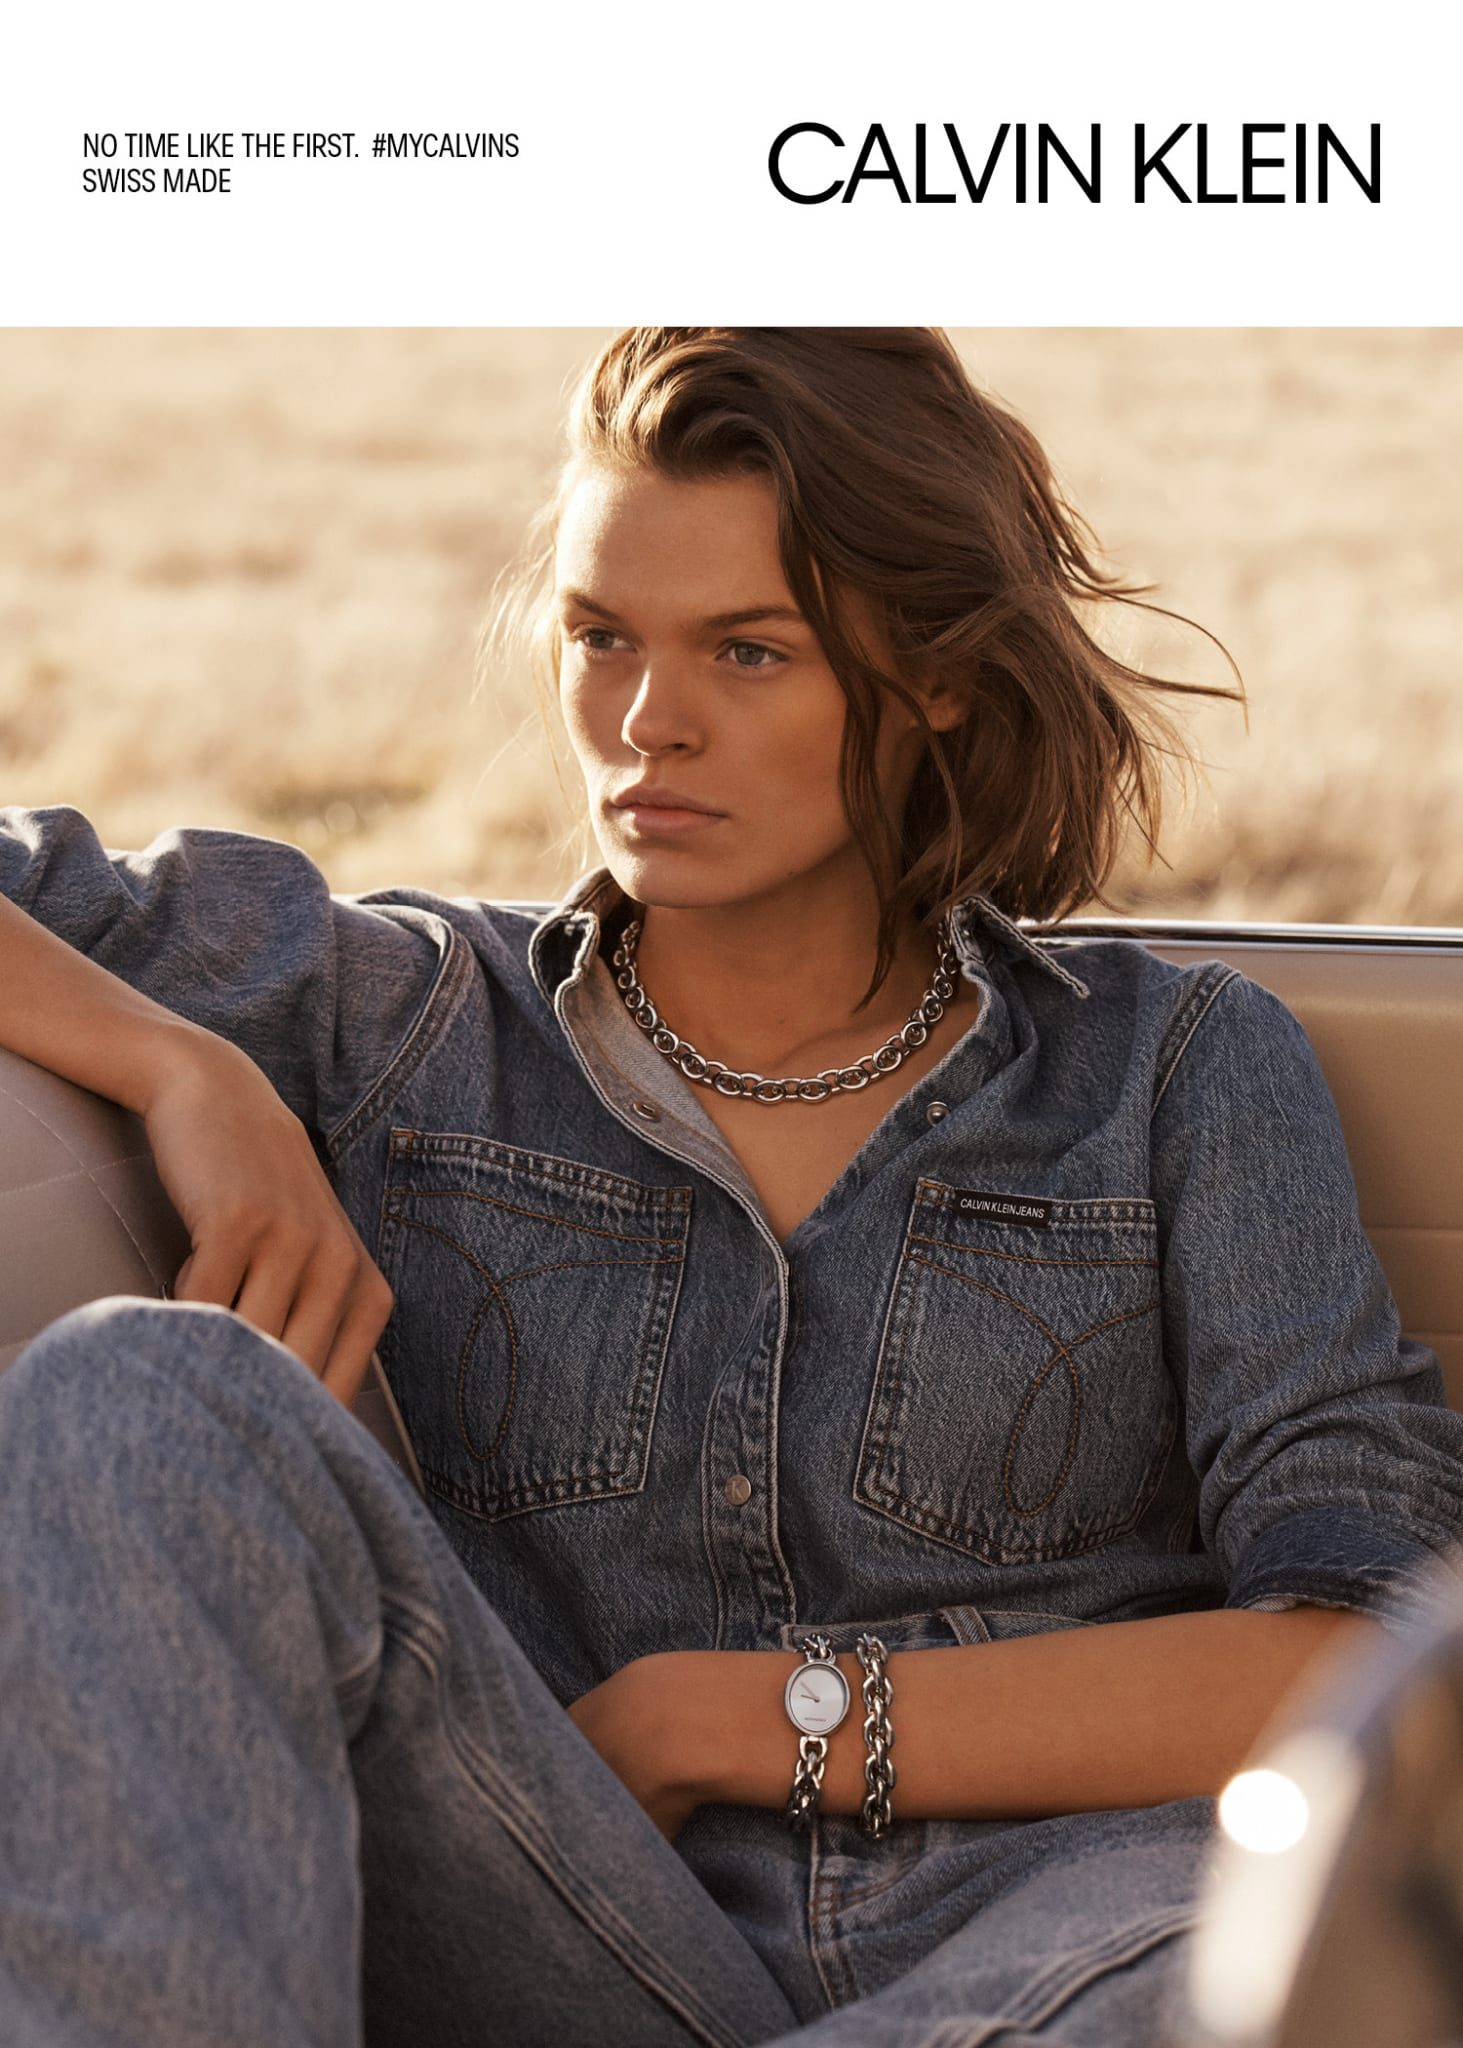 Interesante nueva campaña de Calvin Klein Watches & Jewellery